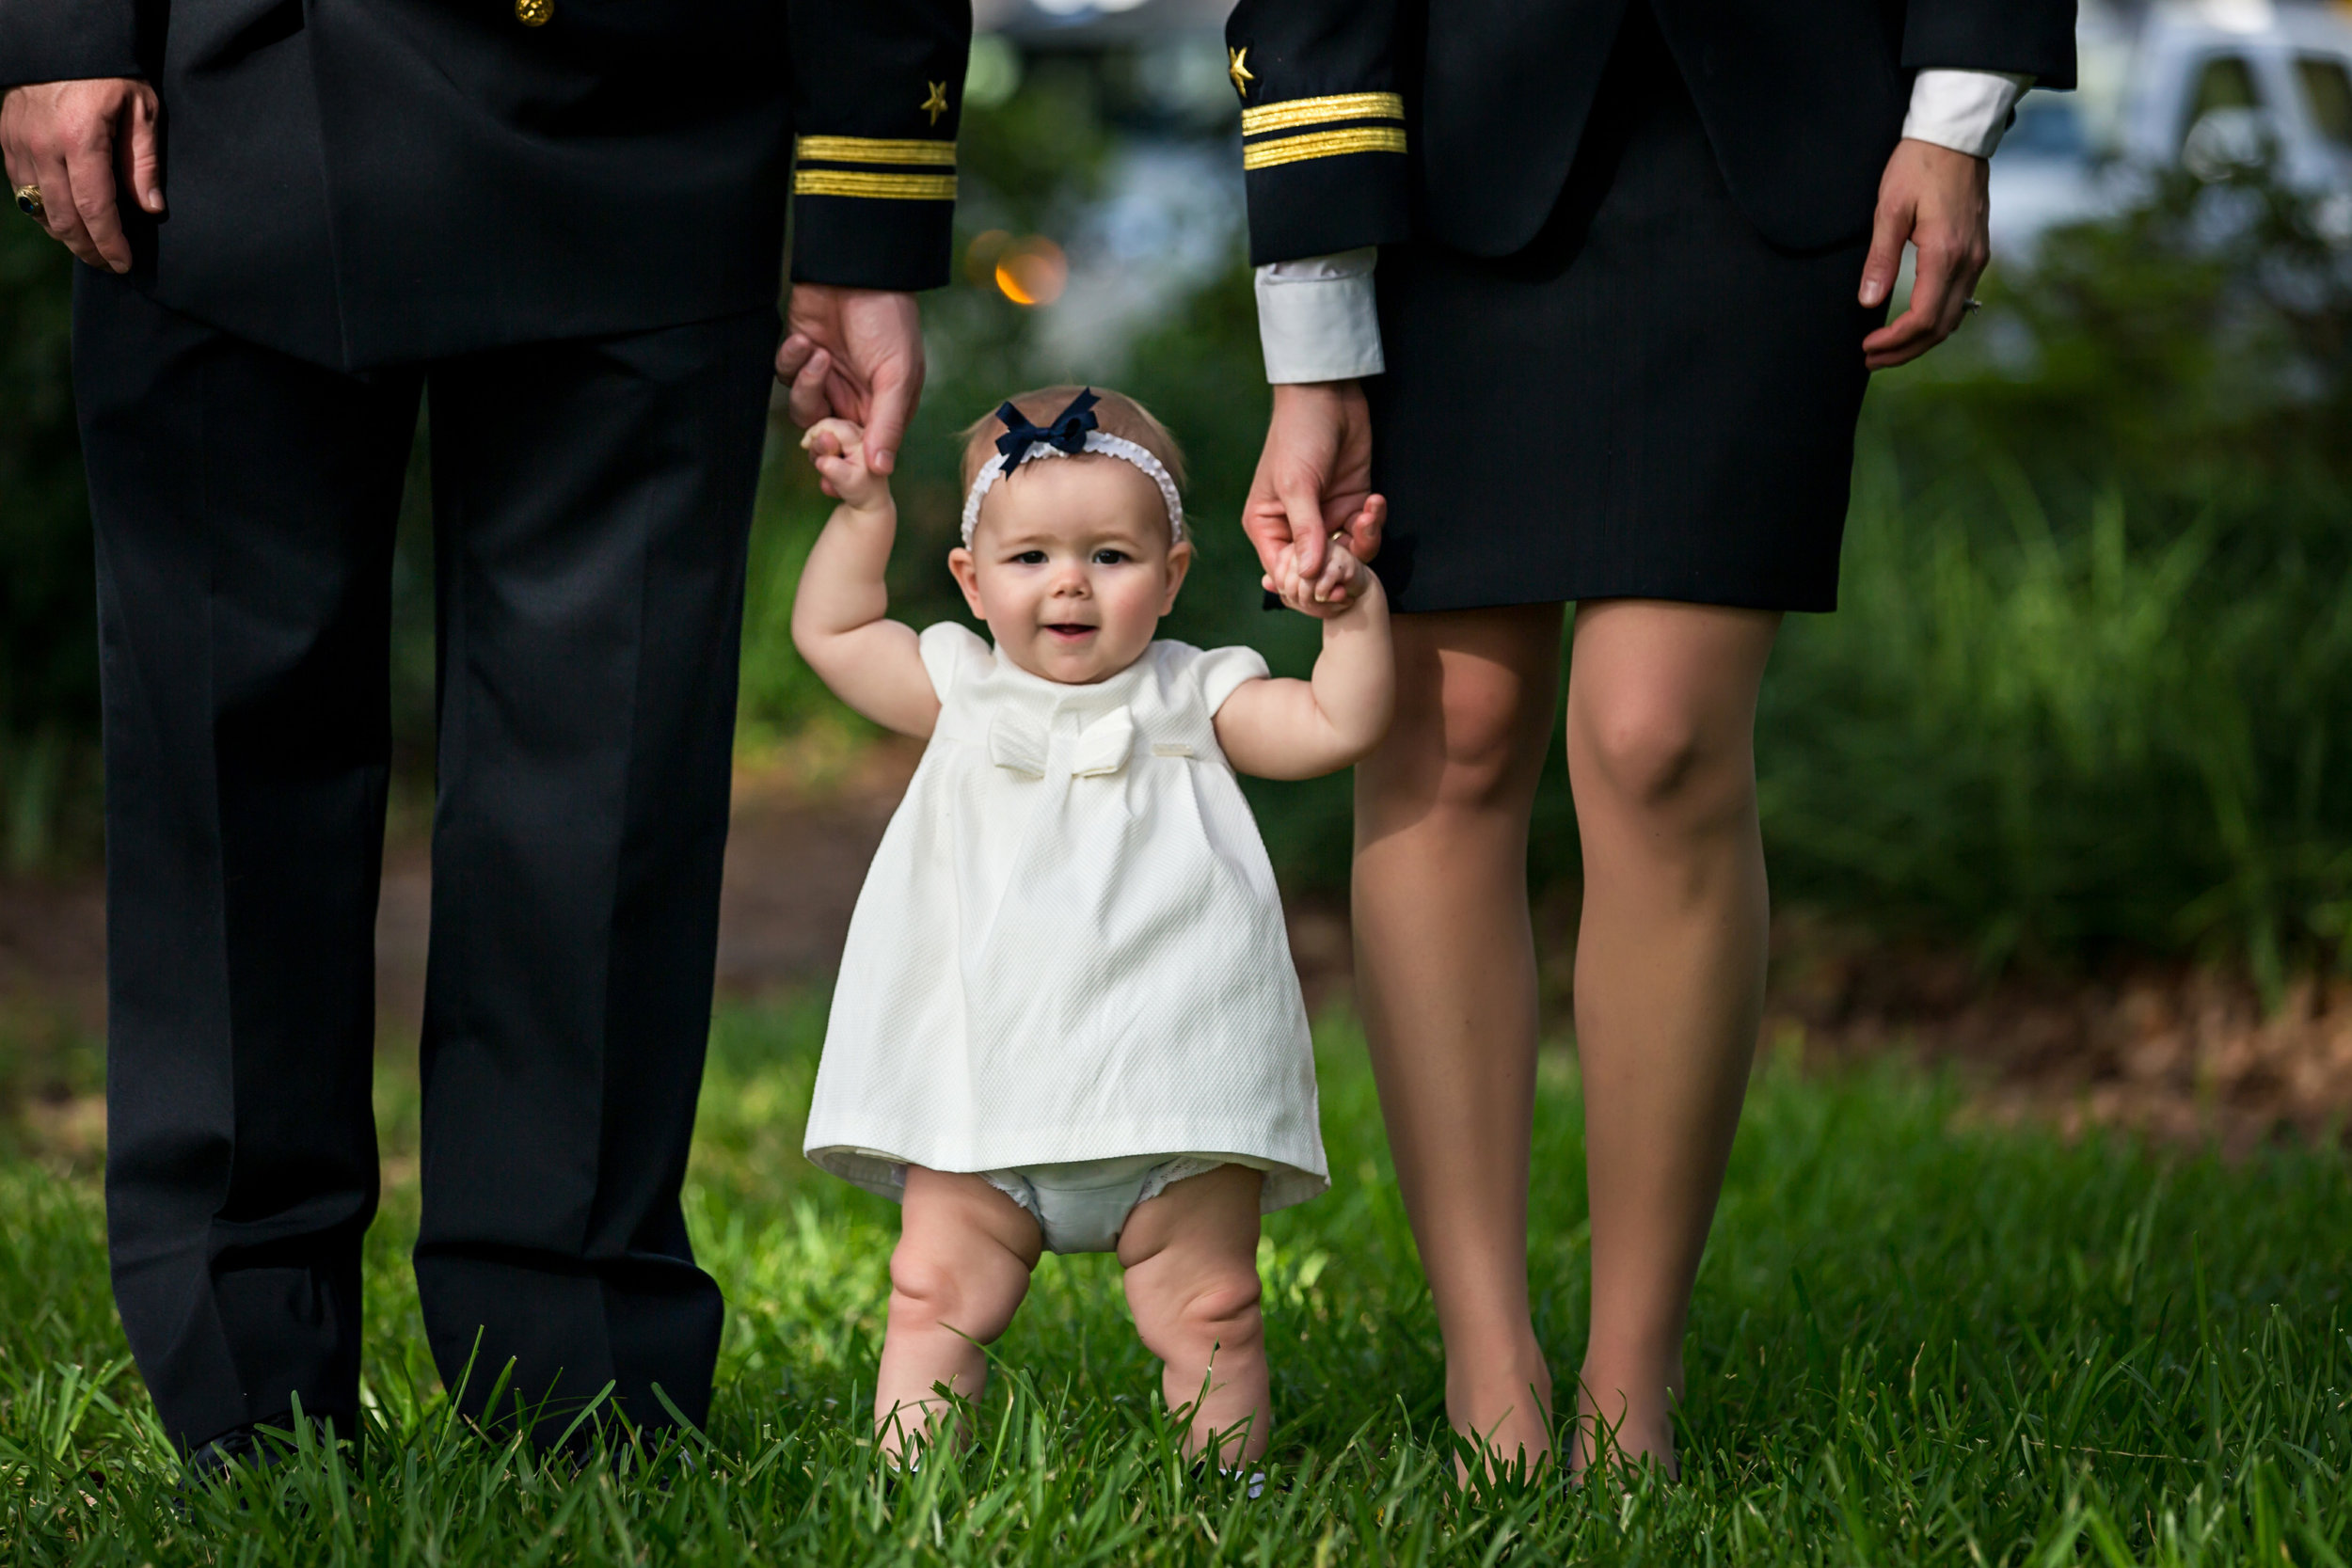 And sweet Eleanor. May this adventure be even more amazing than the last.  Appleseed Photography